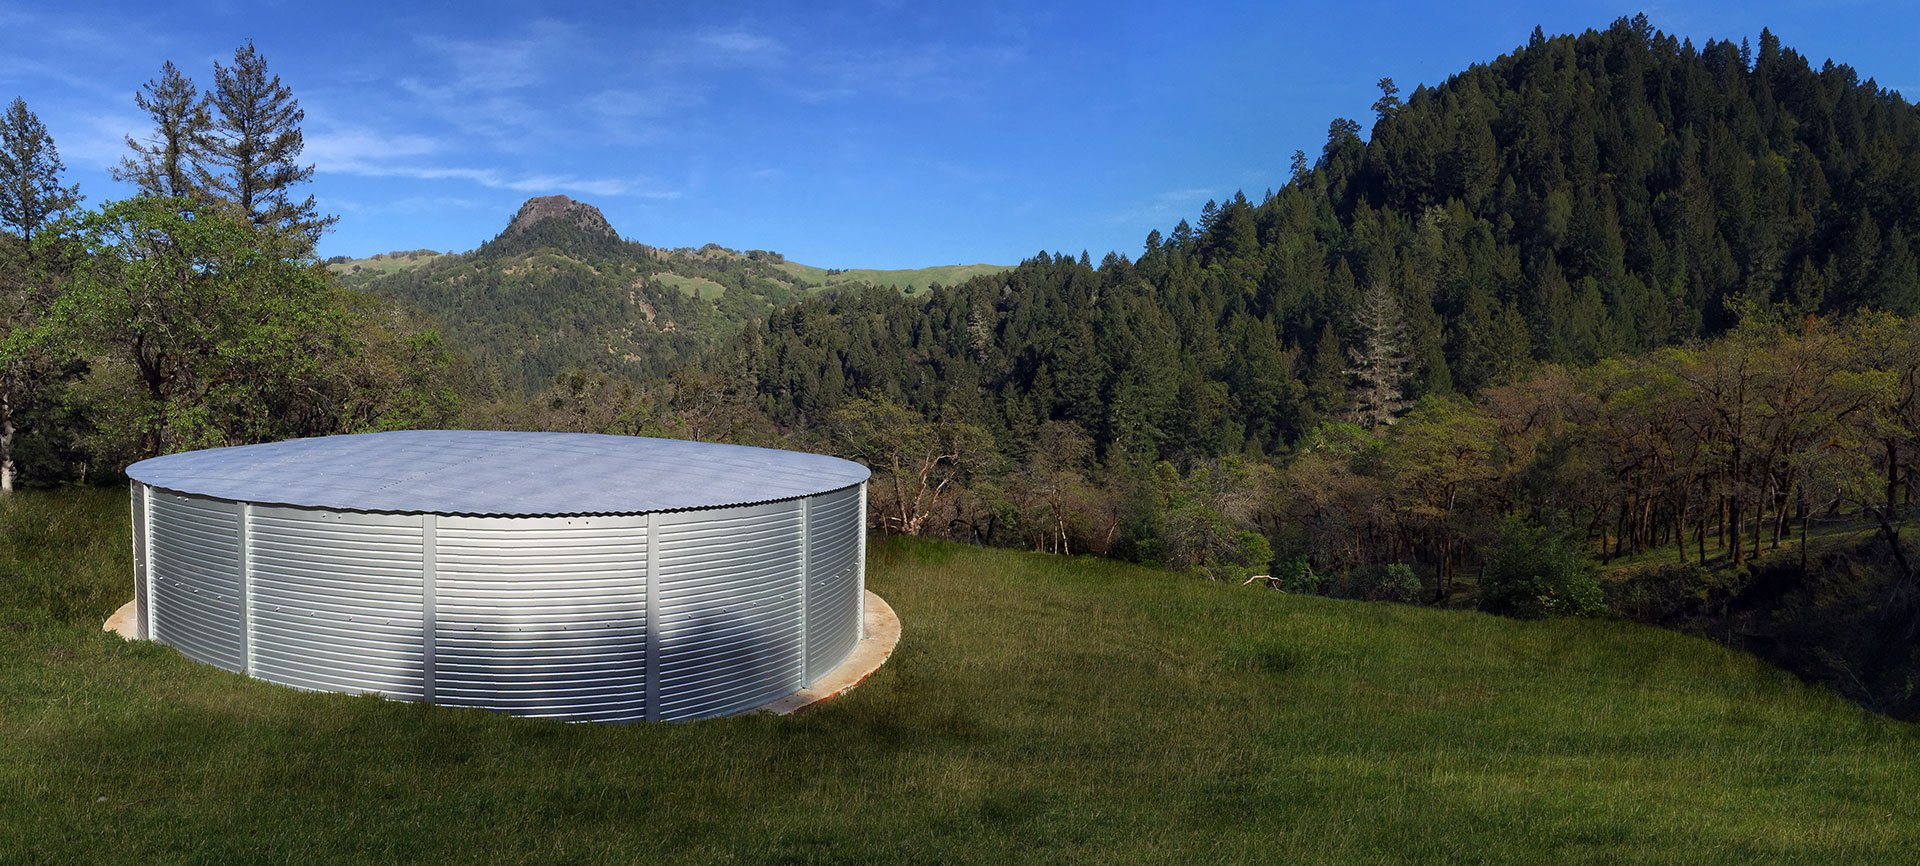 California Pioneer Water Tanks